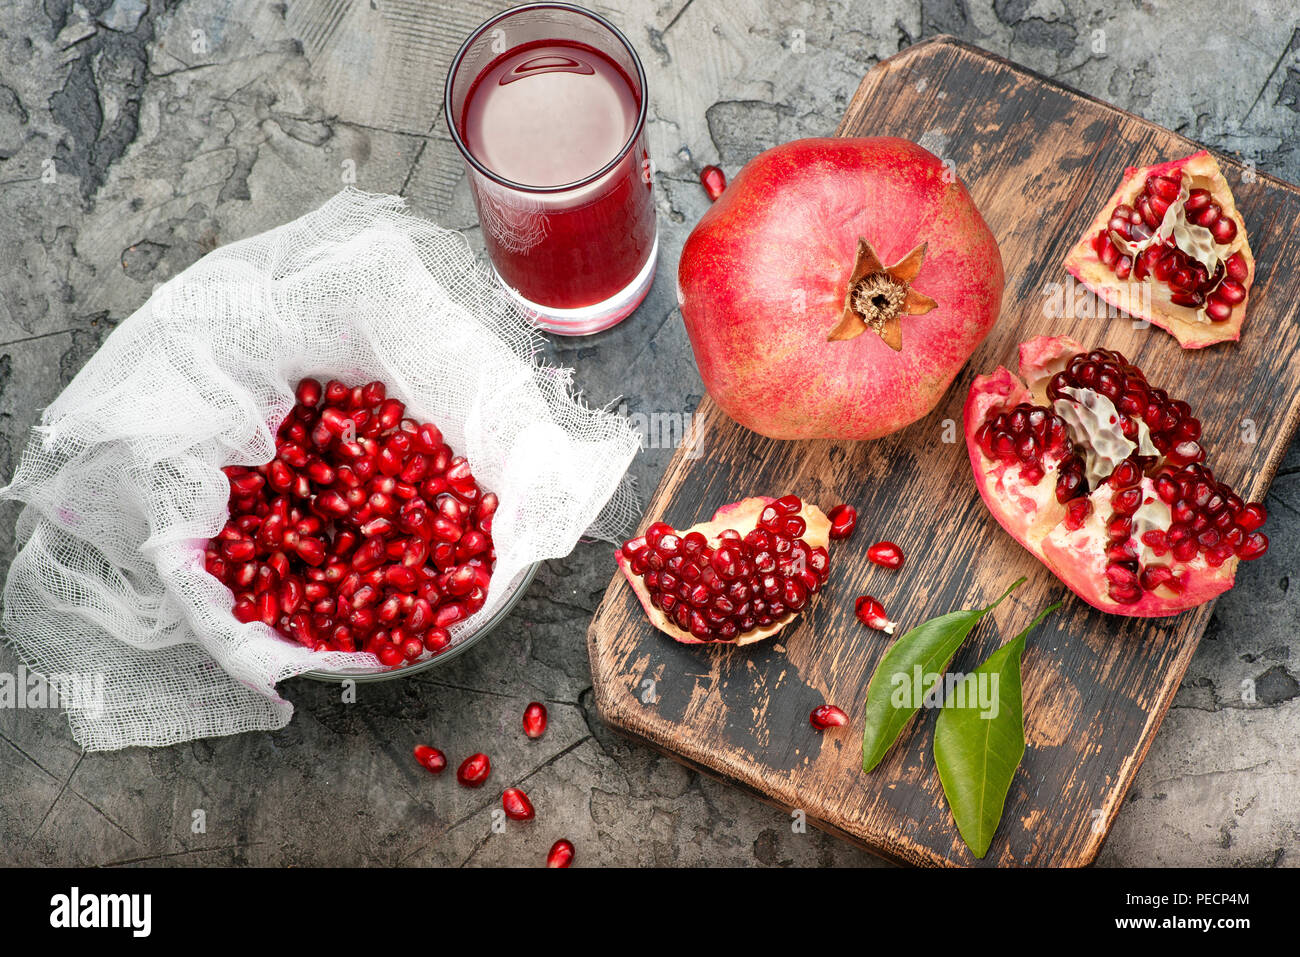 Pomegranate fruits with grains and leaves on the table. Make juice. Top view. - Stock Image